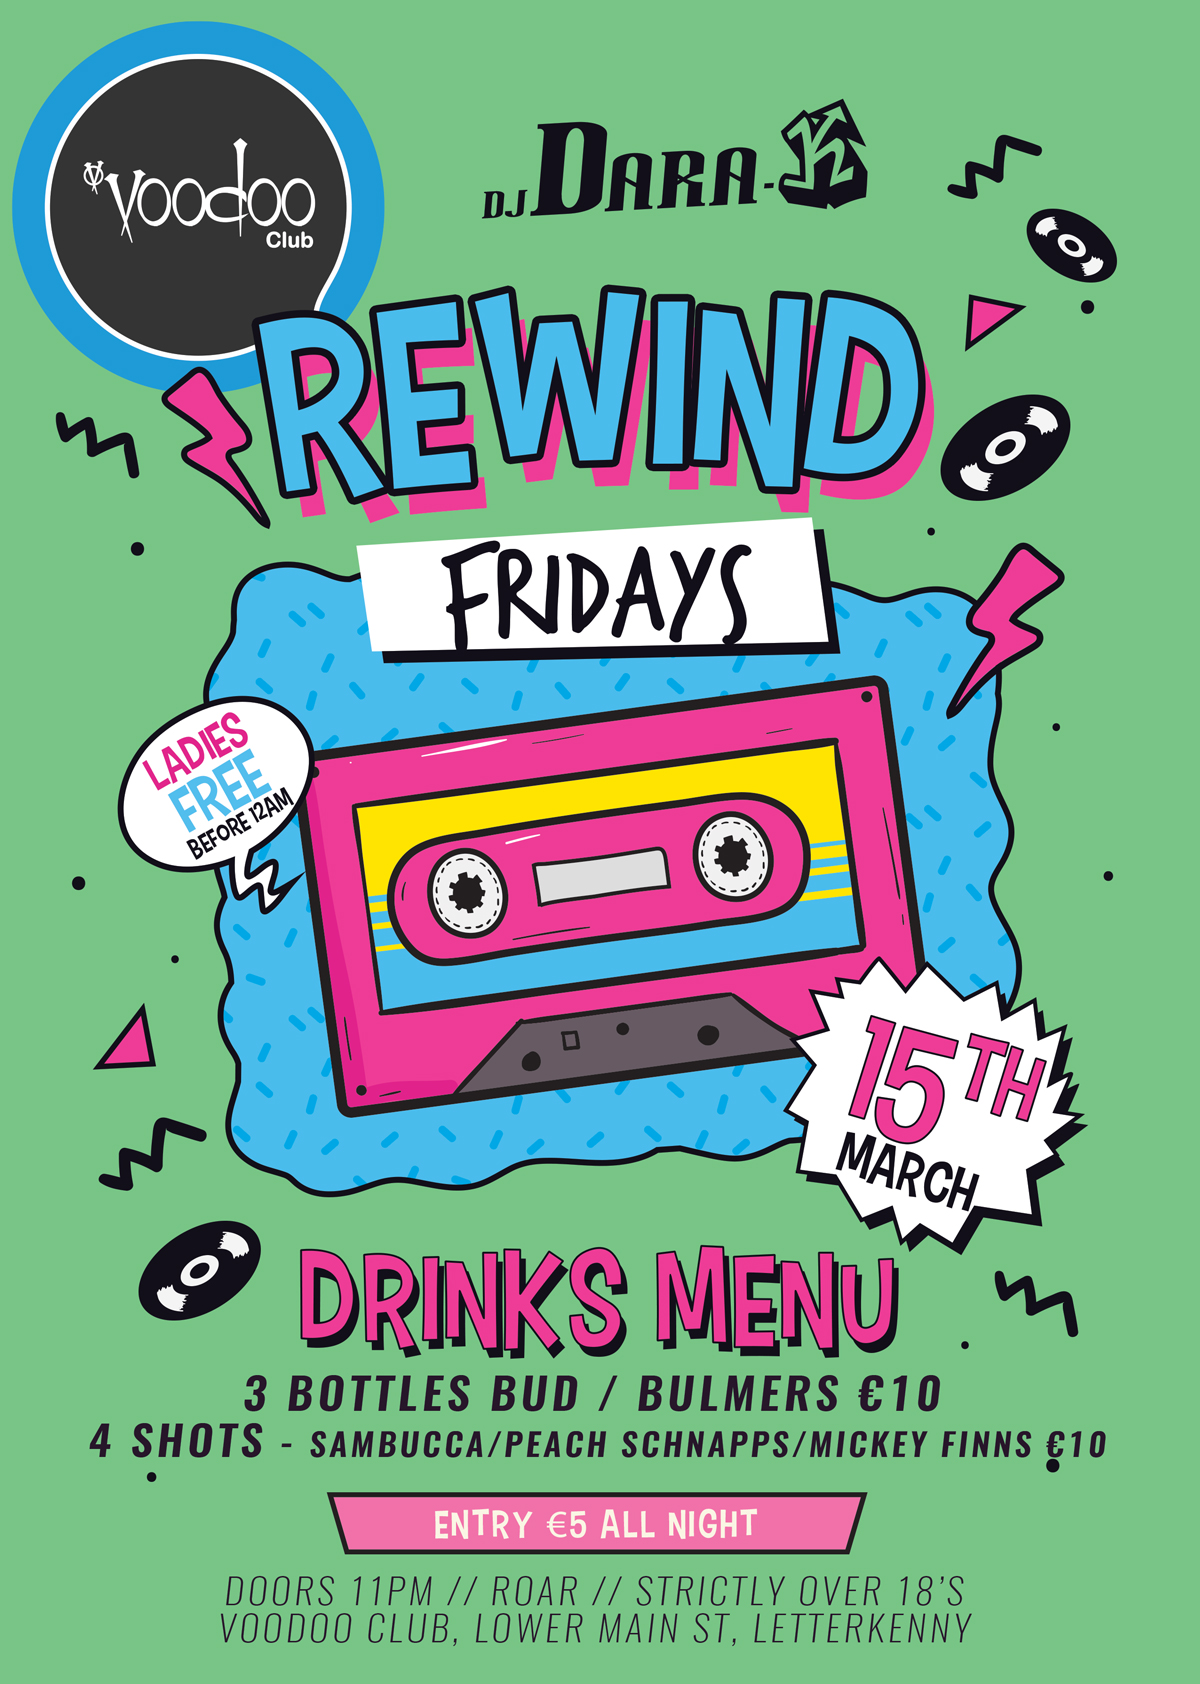 VOODOO-CLUB---rewind-fridays---dara-k-fri-march-15-2019.jpg